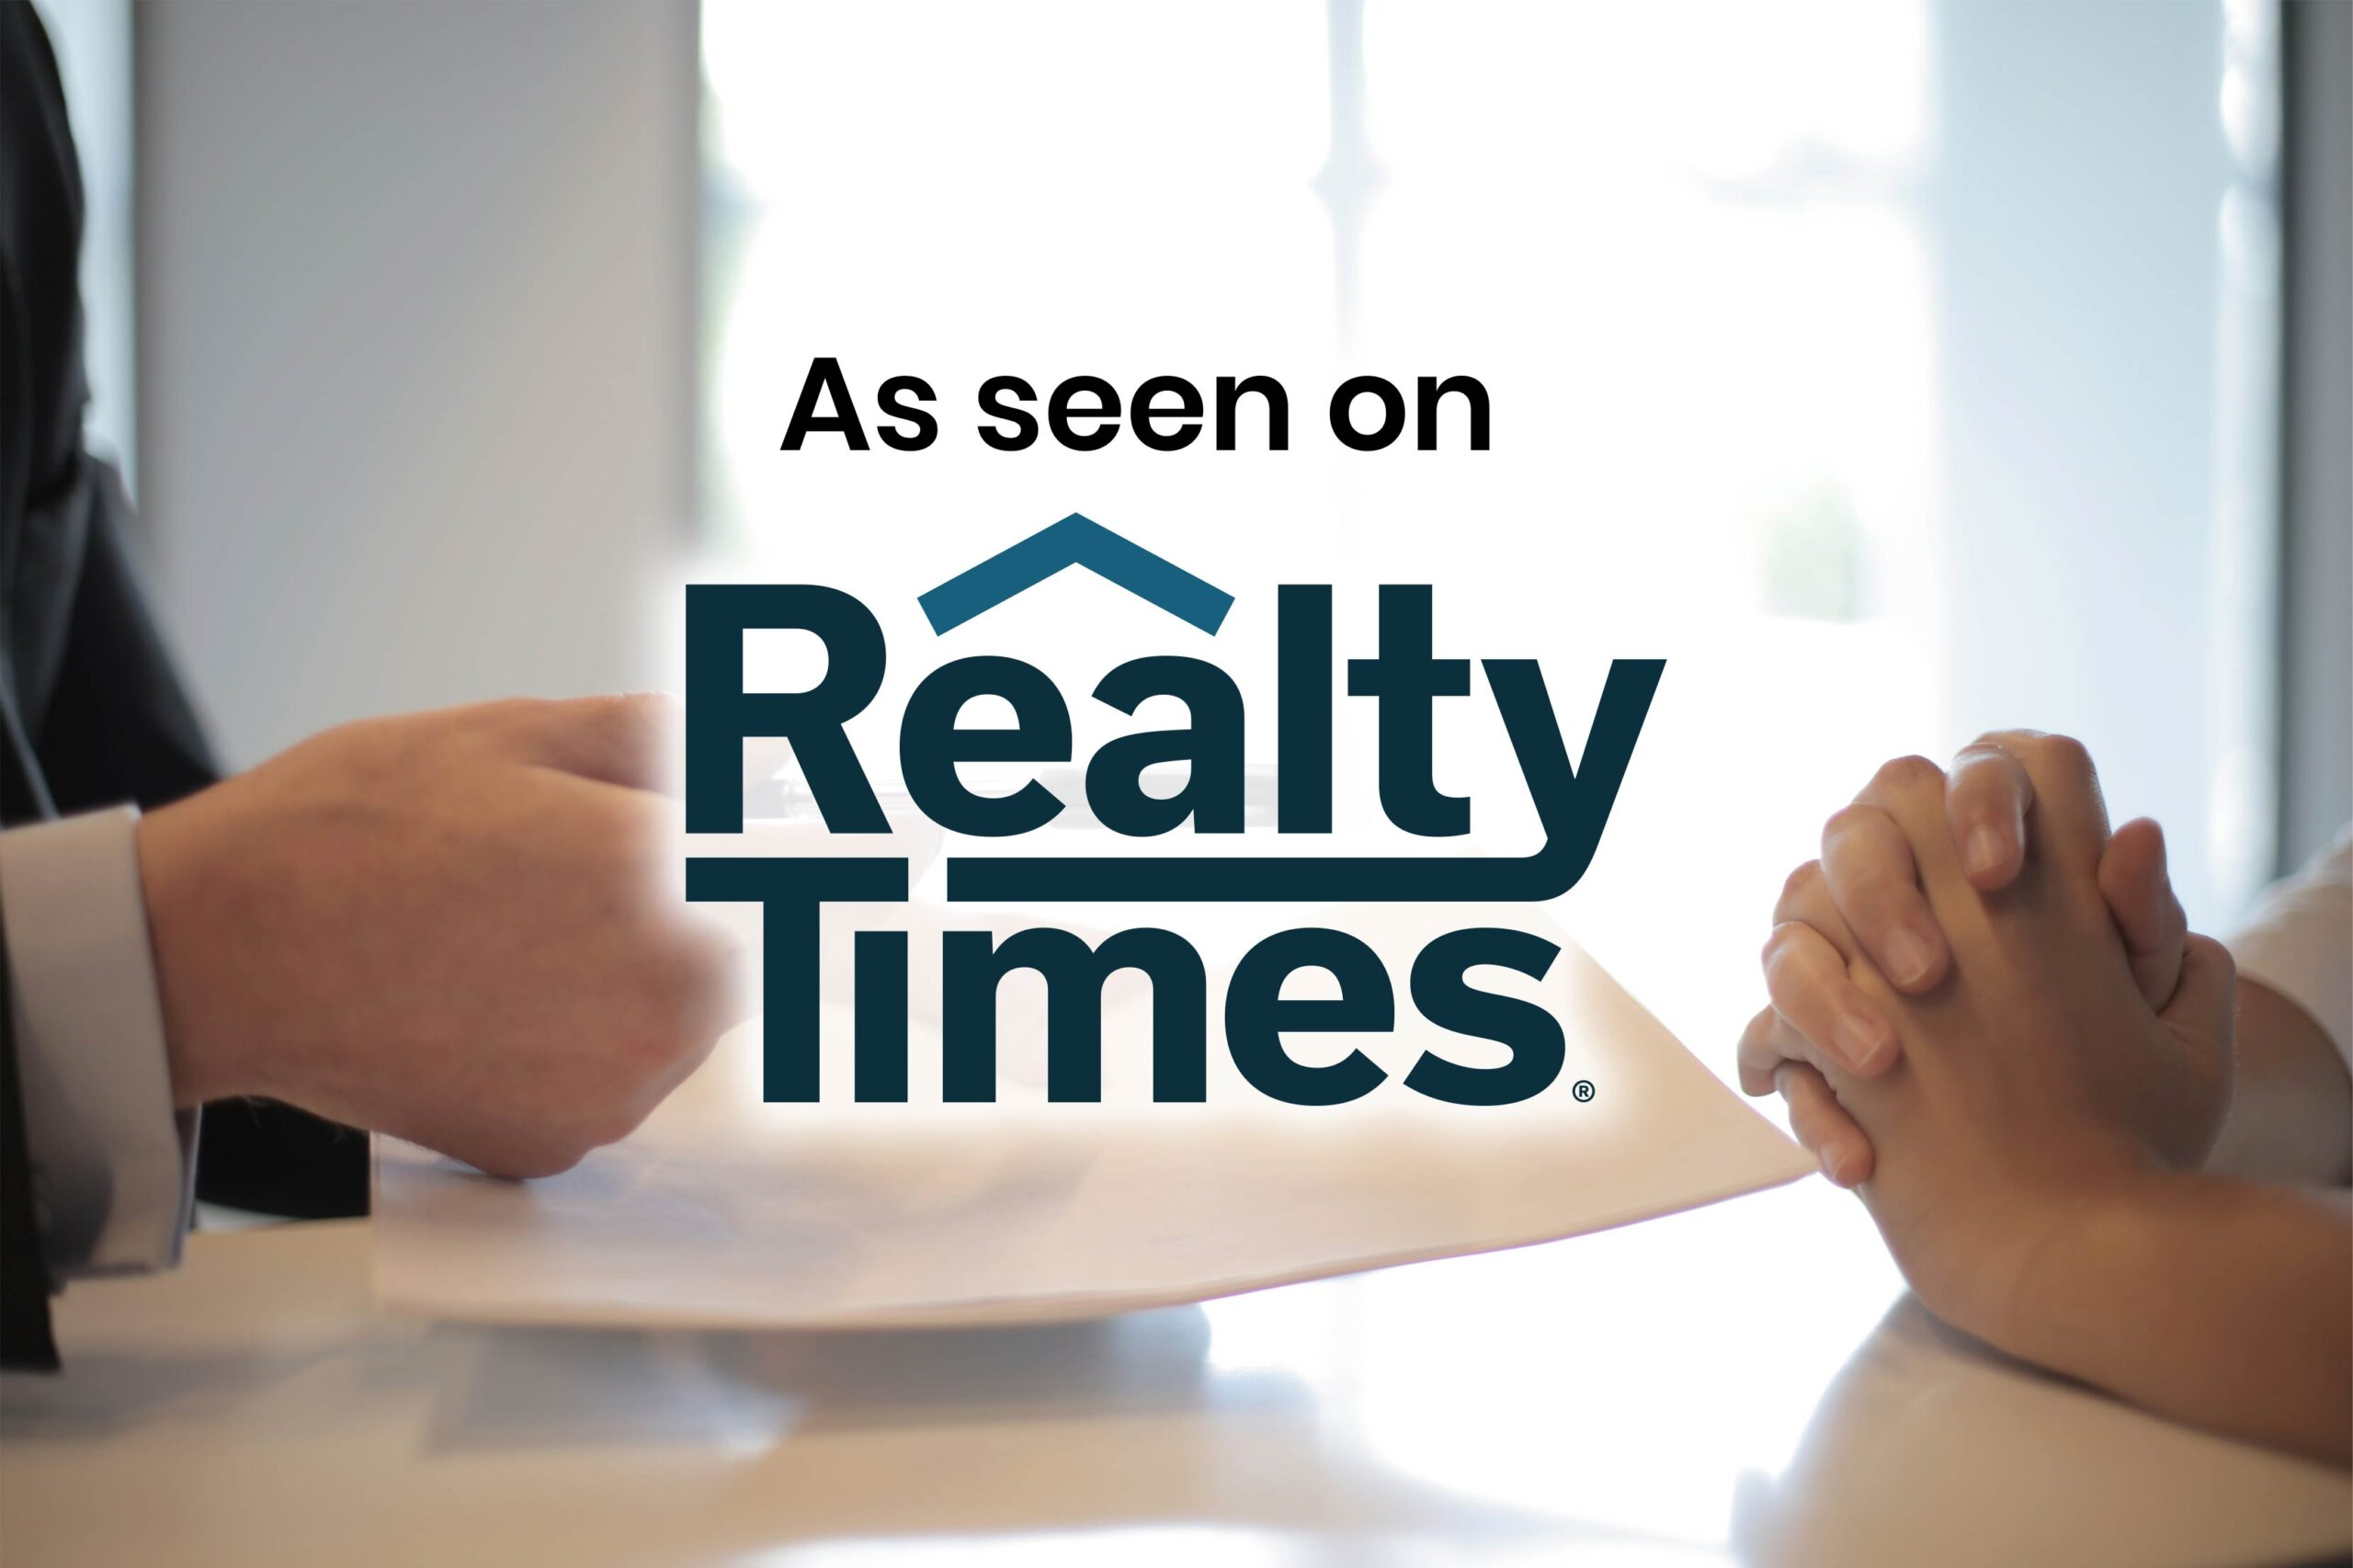 As seen on Realty Times